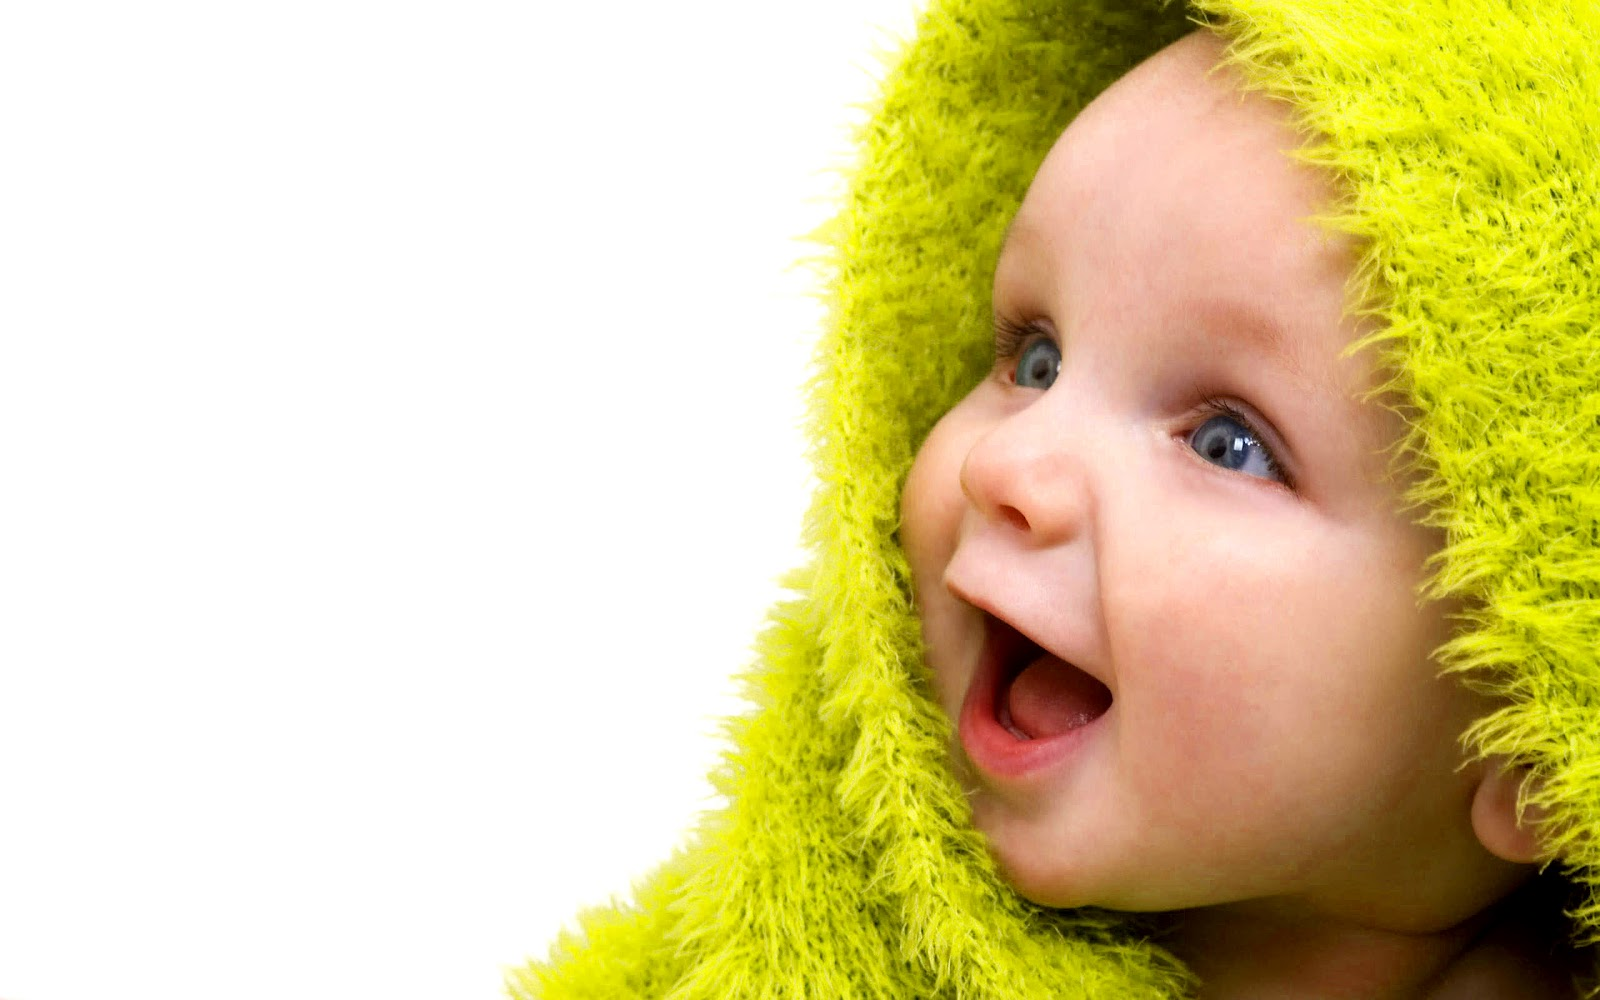 Cute Baby Laughing Mobile Wallpaper   Auto Design Tech